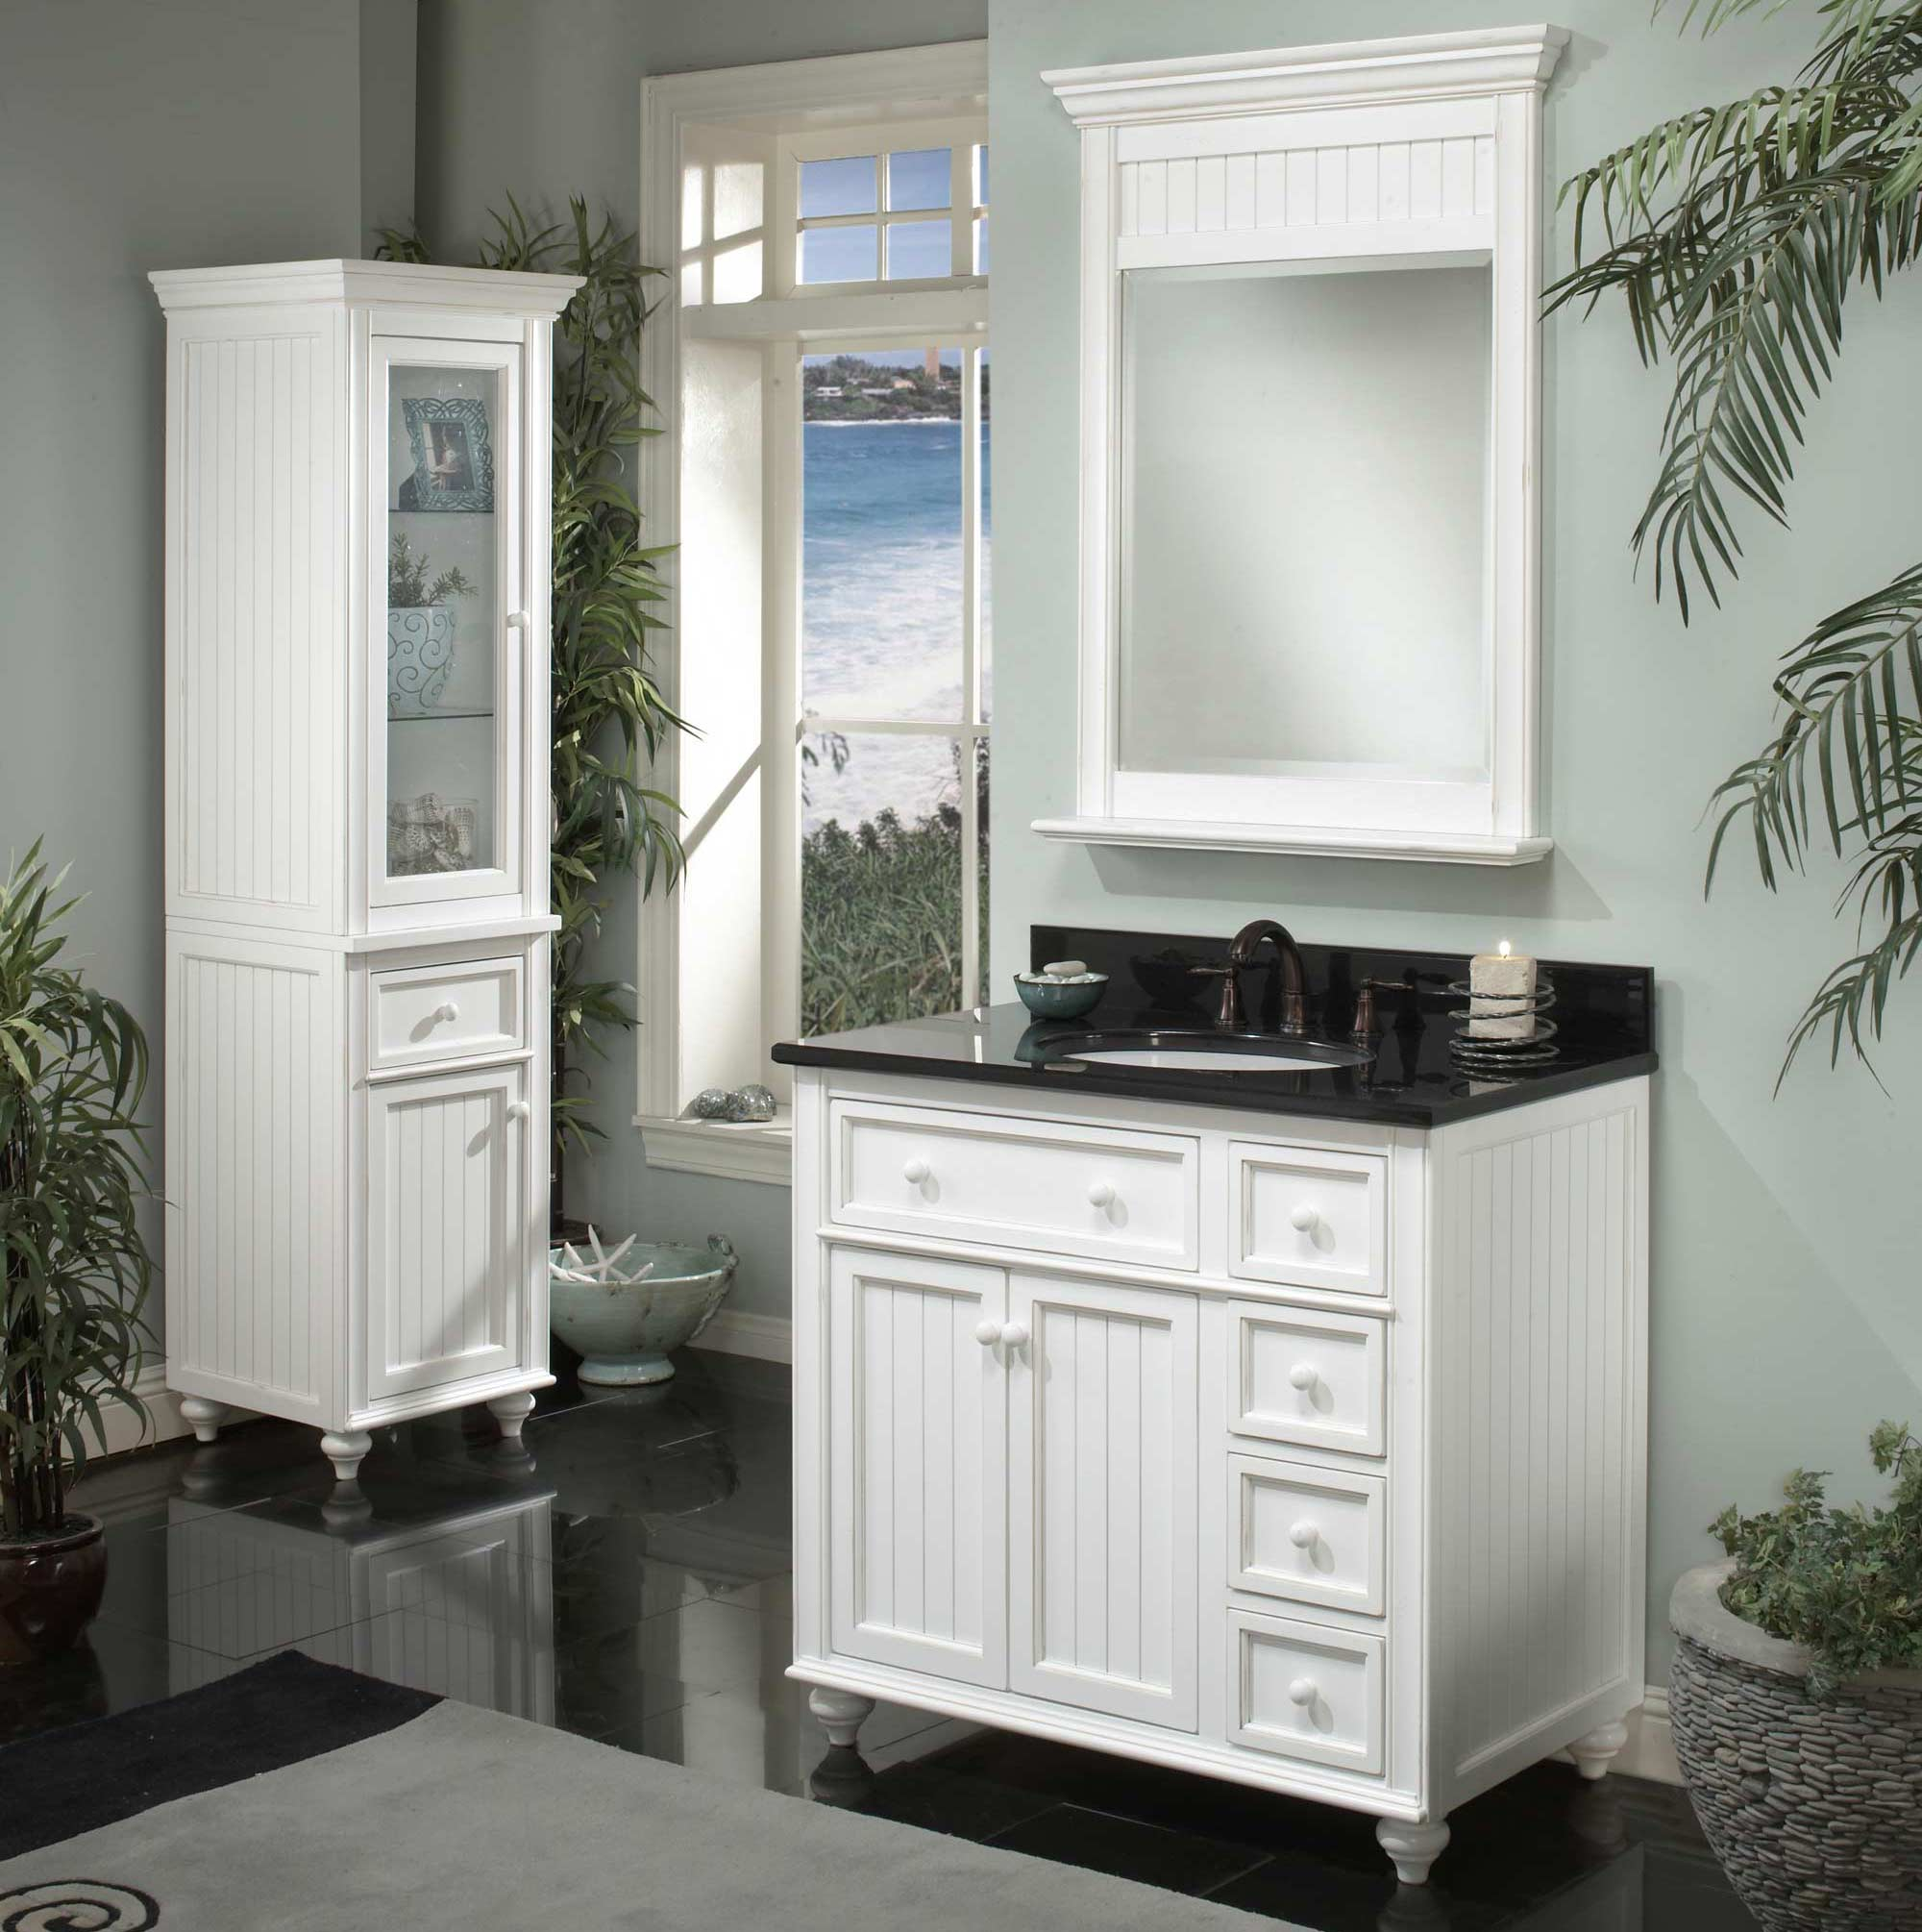 Sagehill 39 S Cottage Retreat Bathroom Vanity With A Black Granite Top